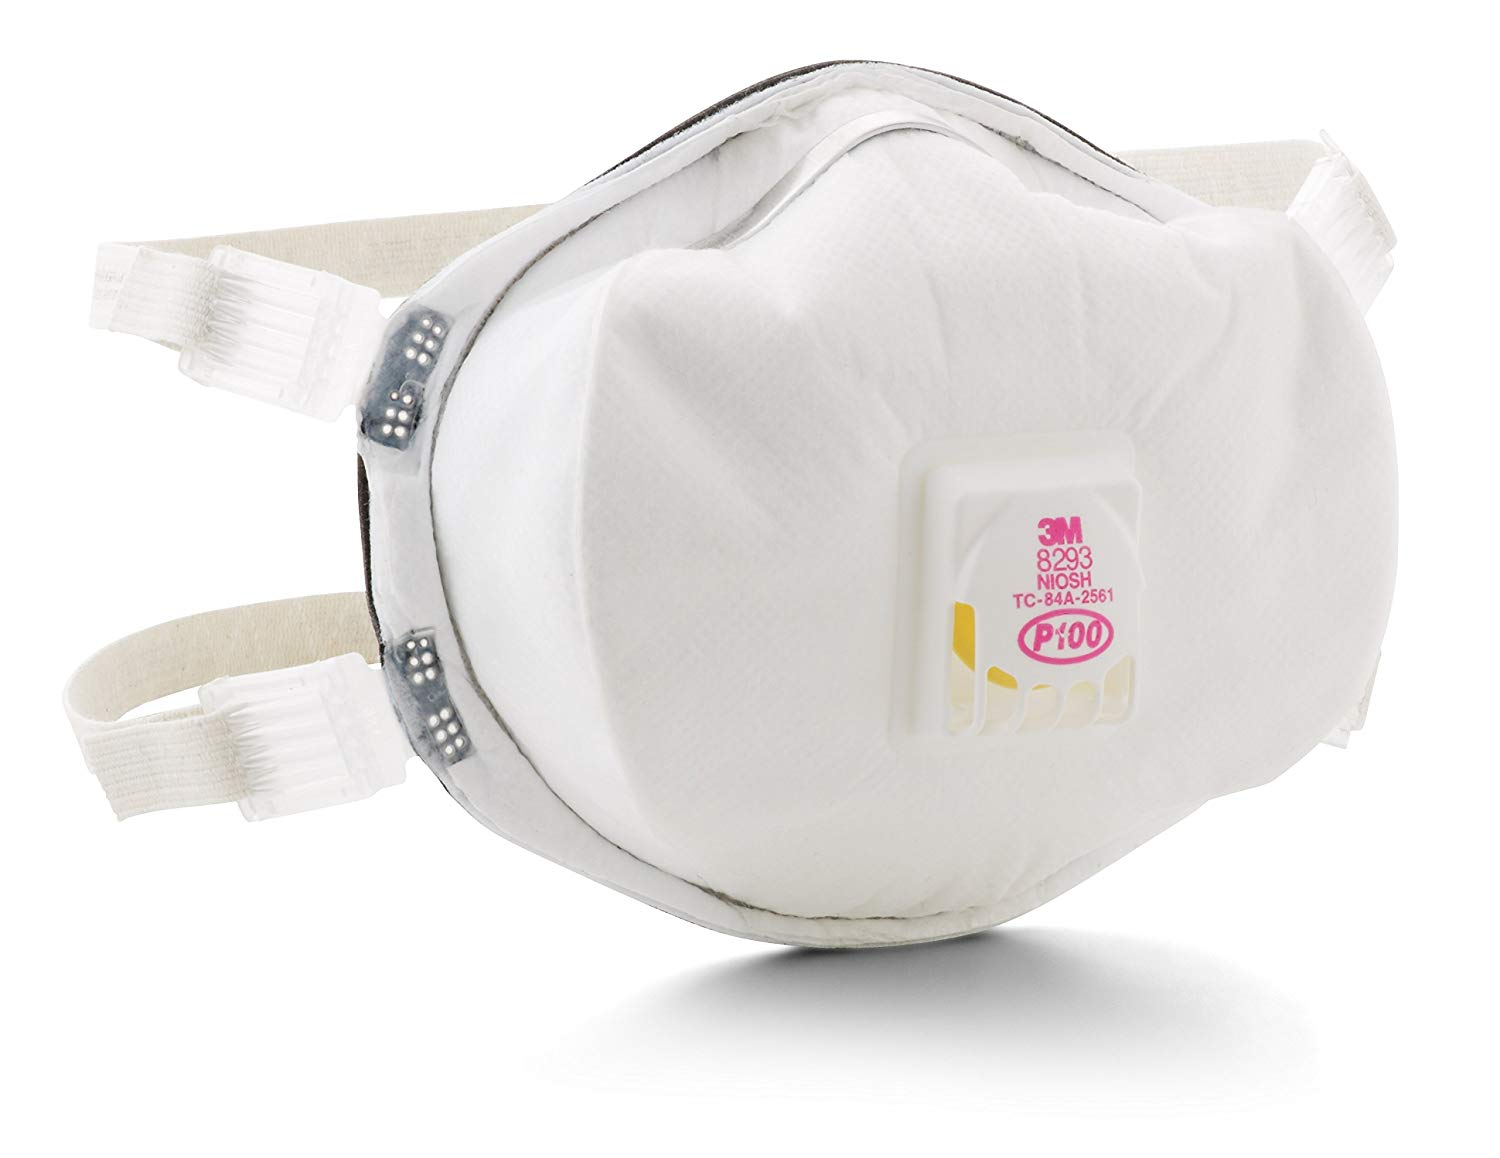 100 3m disposable n95 masks